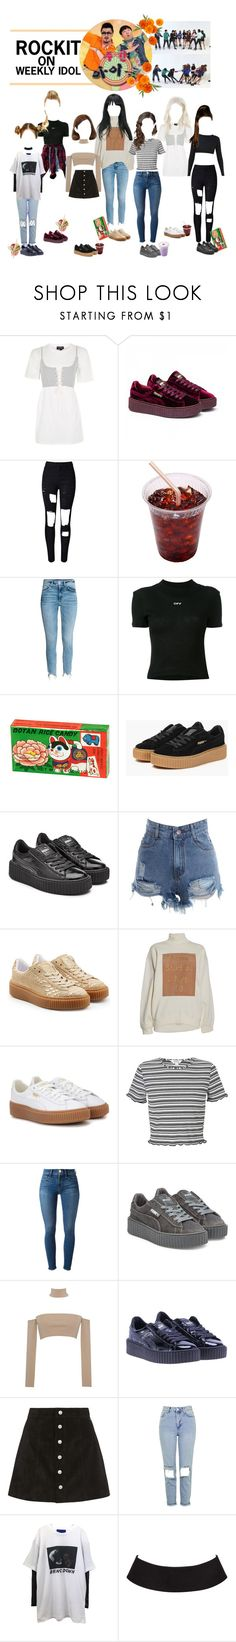 """""""«WEEKLY IDOL» ROCKIT [BLAST OFF DEBUT]"""" by cw-entertainment ❤ liked on Polyvore featuring Topshop, Puma, WithChic, Off-White, sOUP, Acne Studios, Miss Selfridge, Frame, pushBUTTON and AG Adriano Goldschmied"""